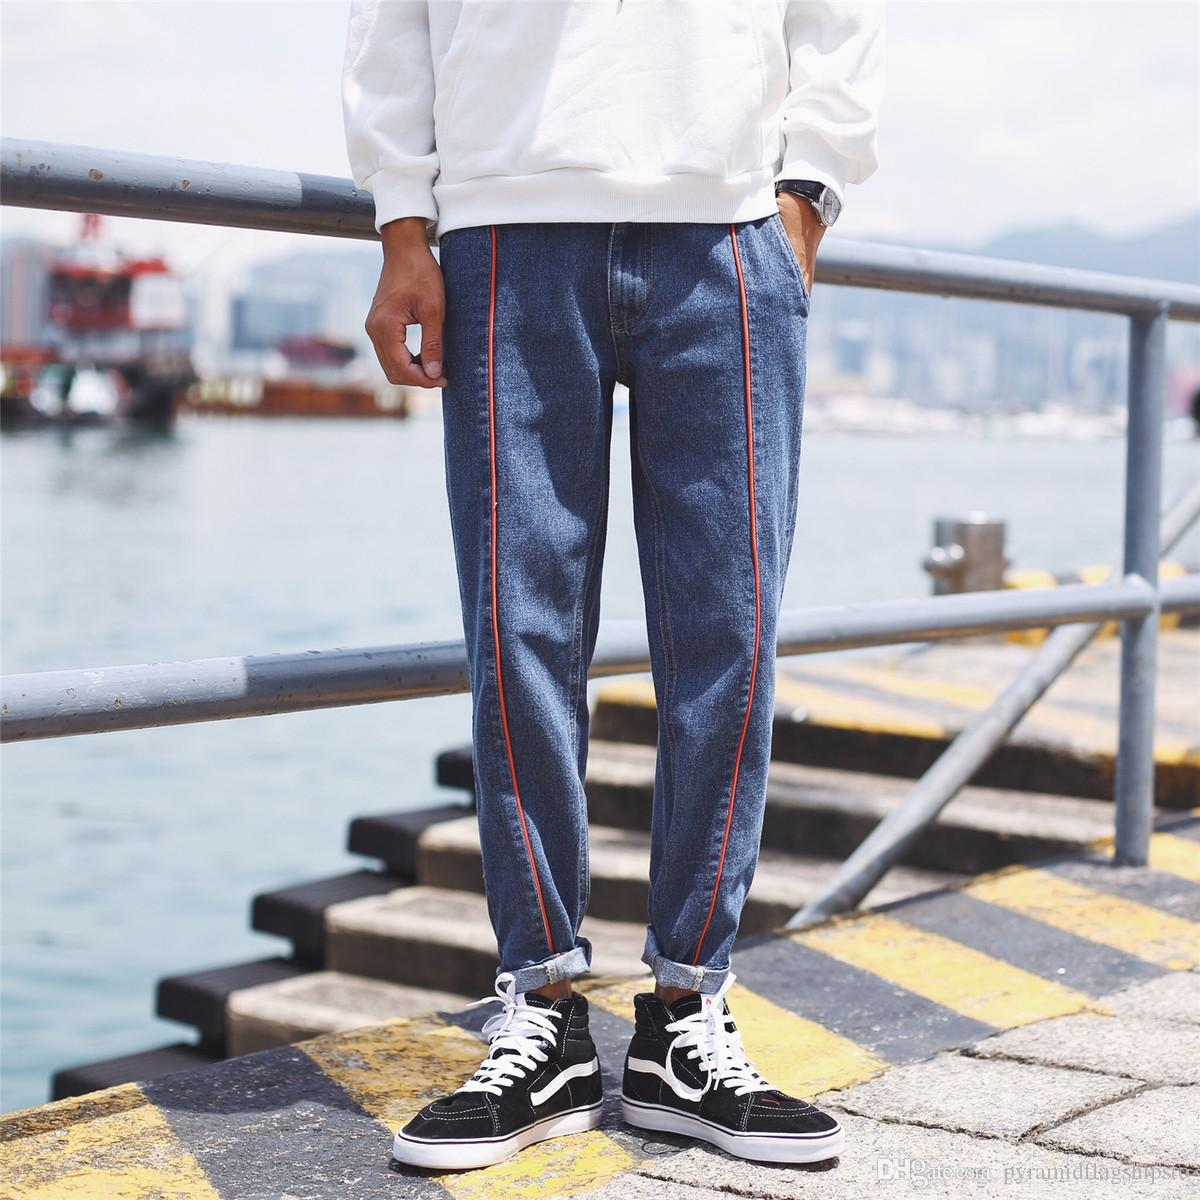 2018 Men's Fashion Trend Cowboy Washed Casual Pants Classic Black Blue Stretch Jeans Slim Fit Homme Biker Denim Trousers M-2XL